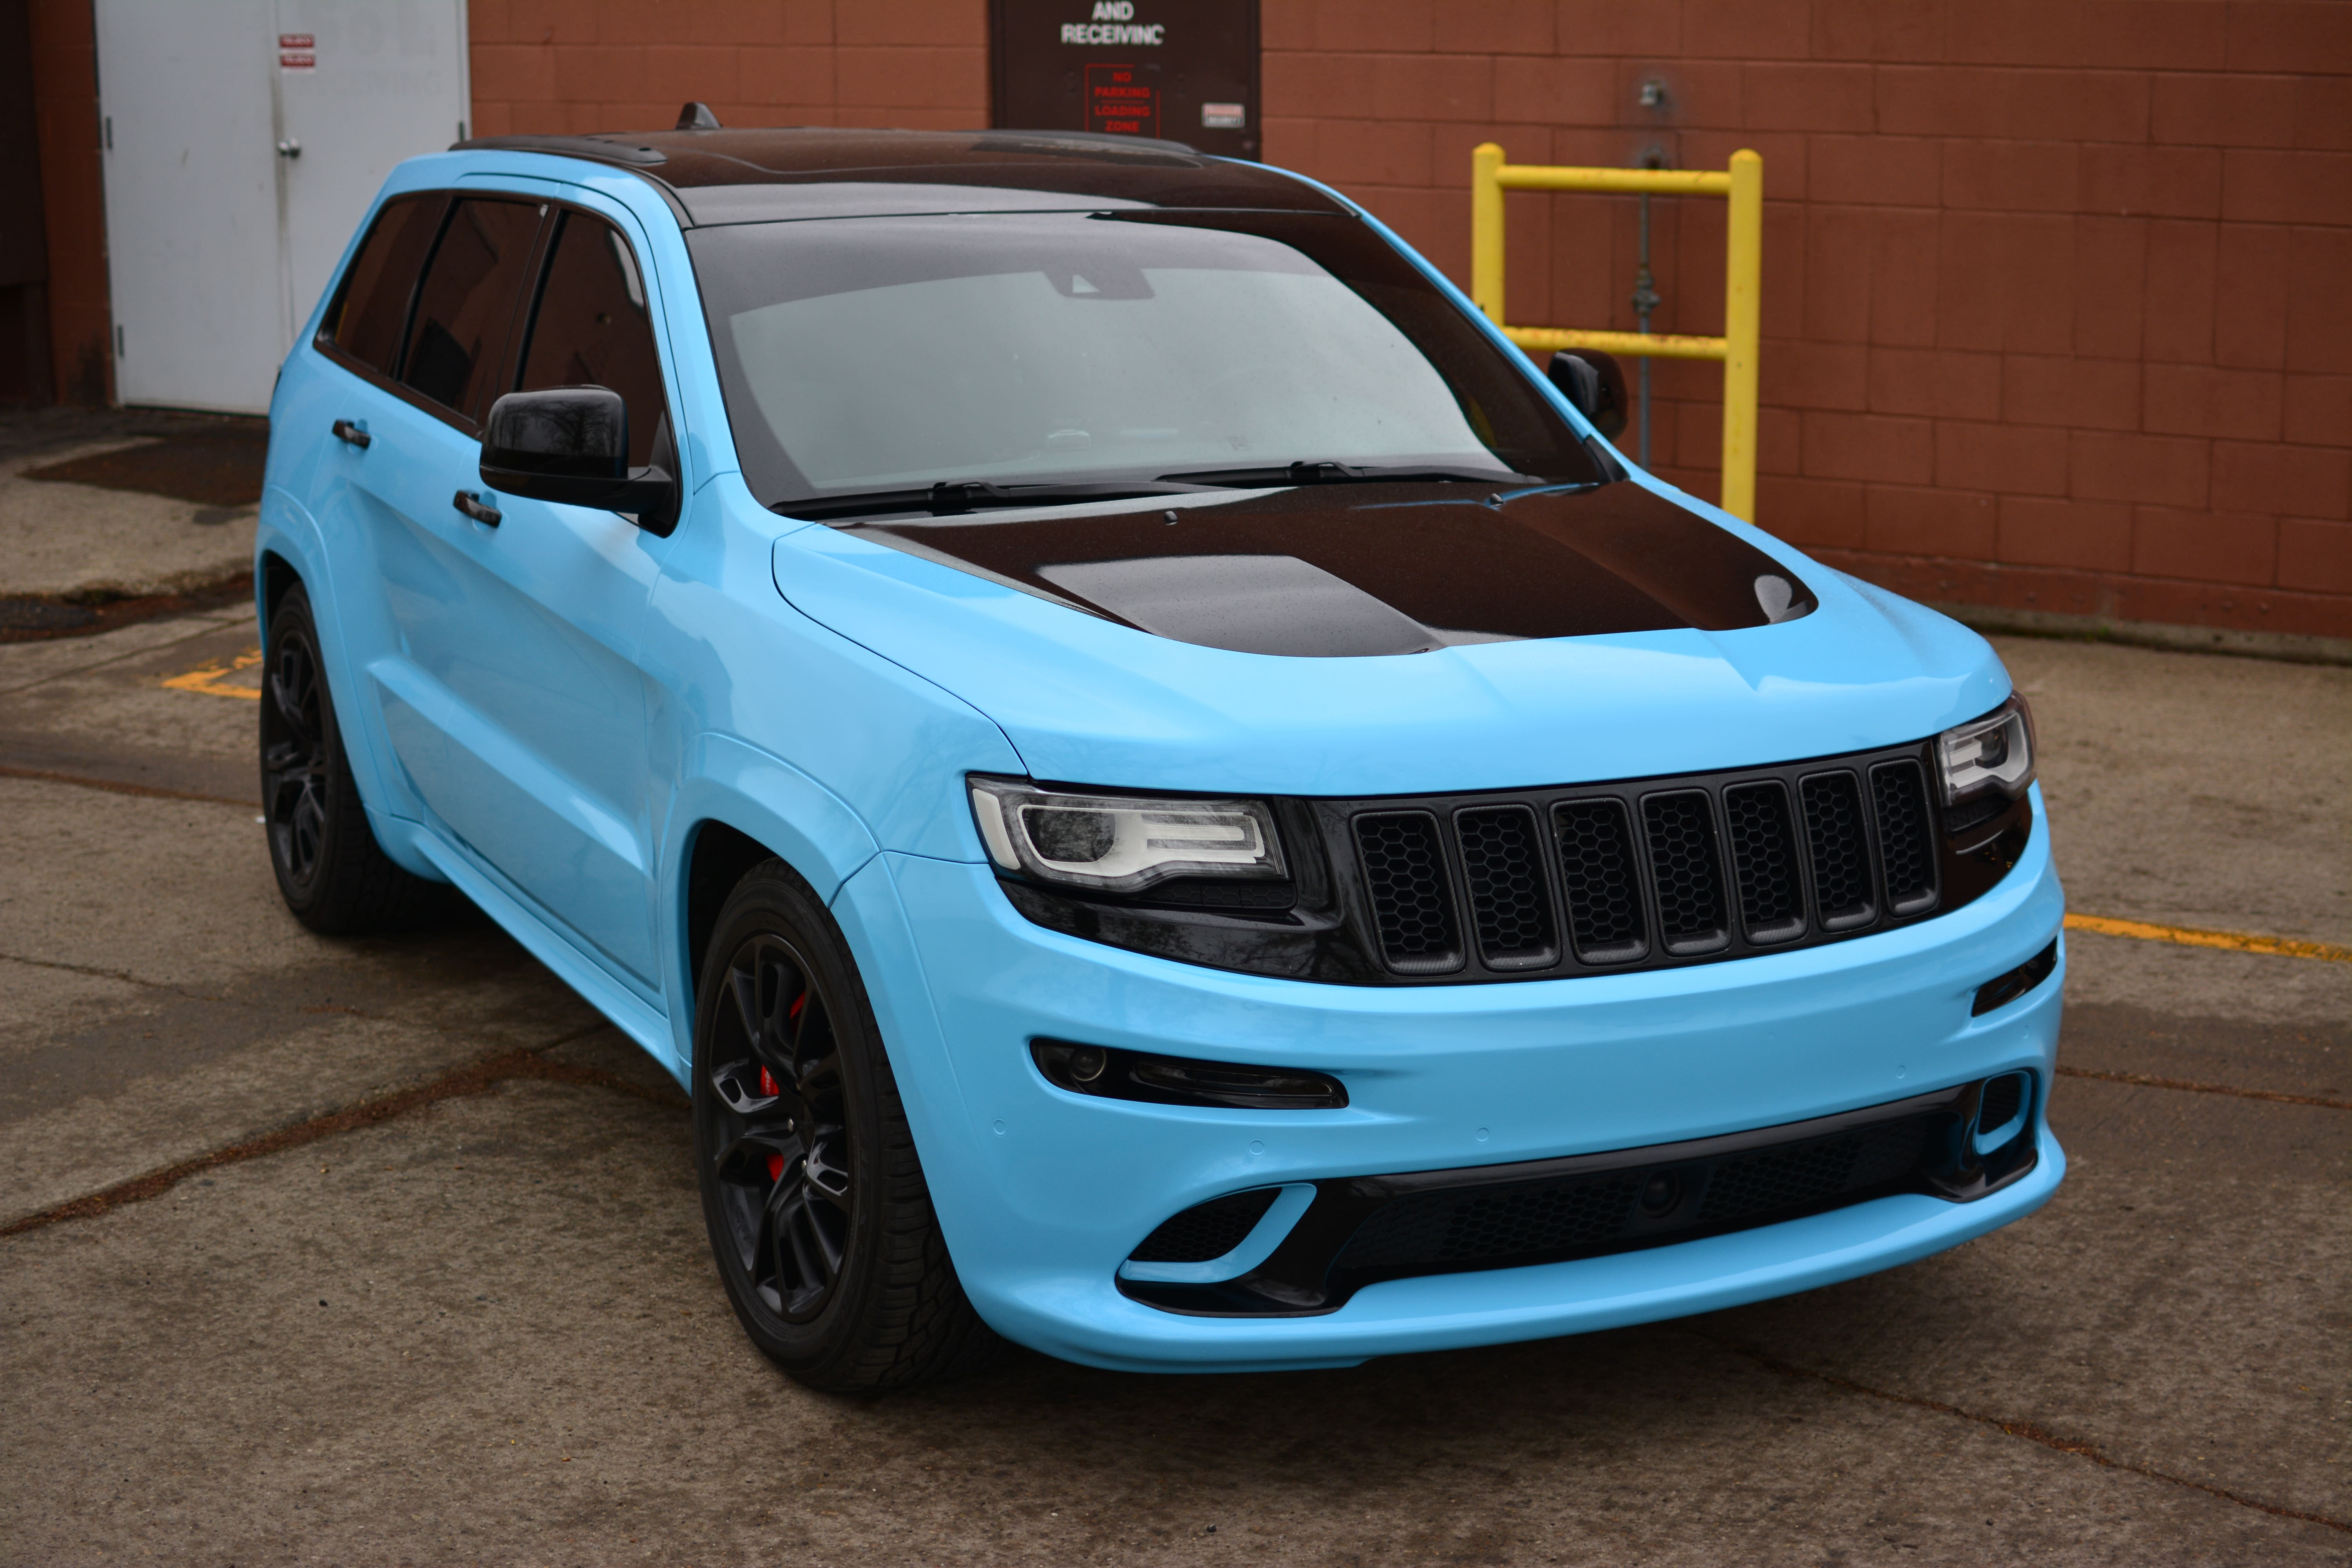 Jeep SRT8 wrapped in 3M Gloss Sky Blue.